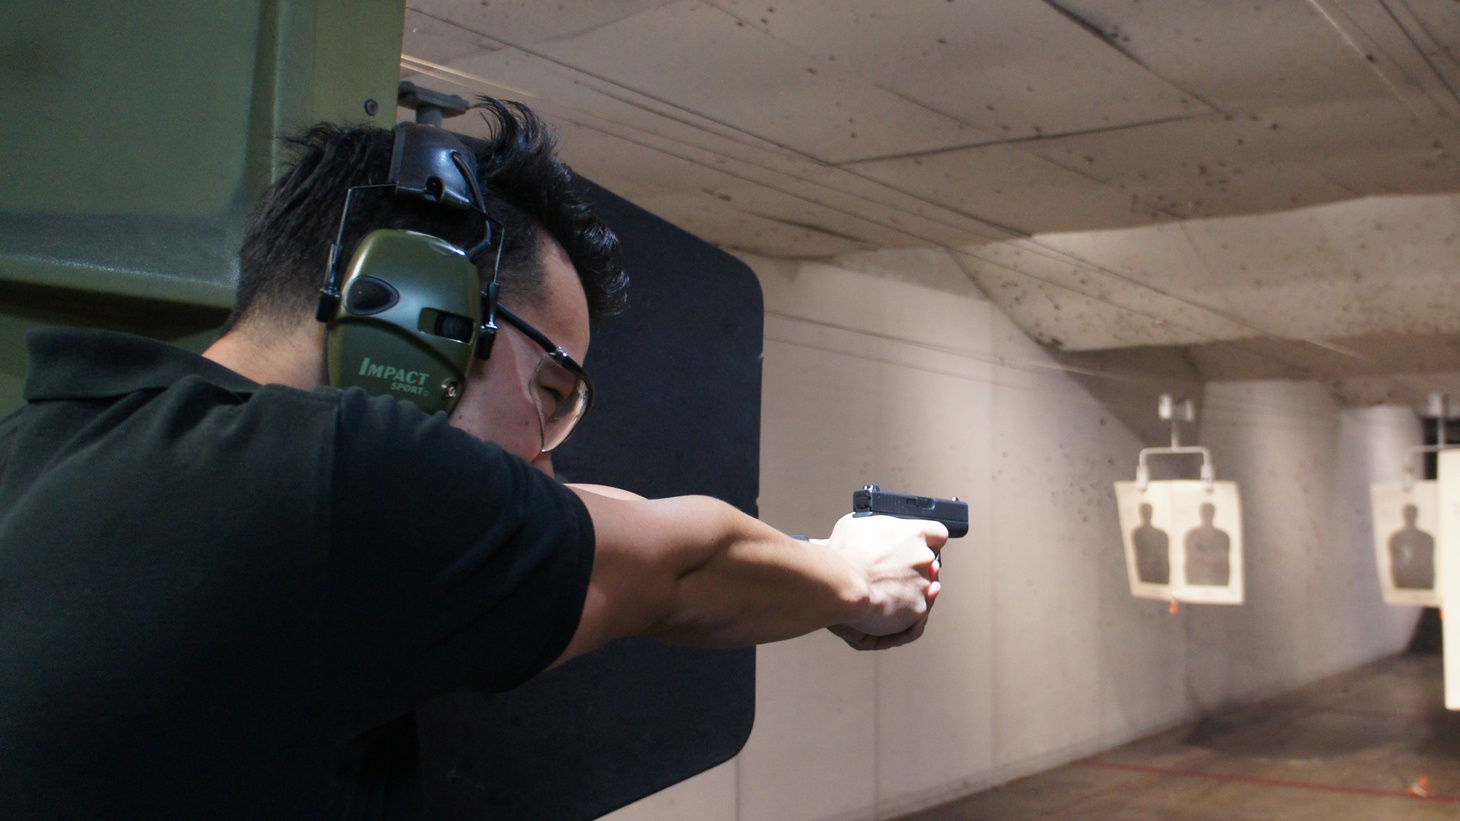 For the most part, California has abstained from the national trend toward carrying weapons in public. But KCRW's Saul Gonzalez found that's not the case in one important part of the state.       What's behind the boom in concealed weapons in Orange County?       Image credit: Saul Gonzalez